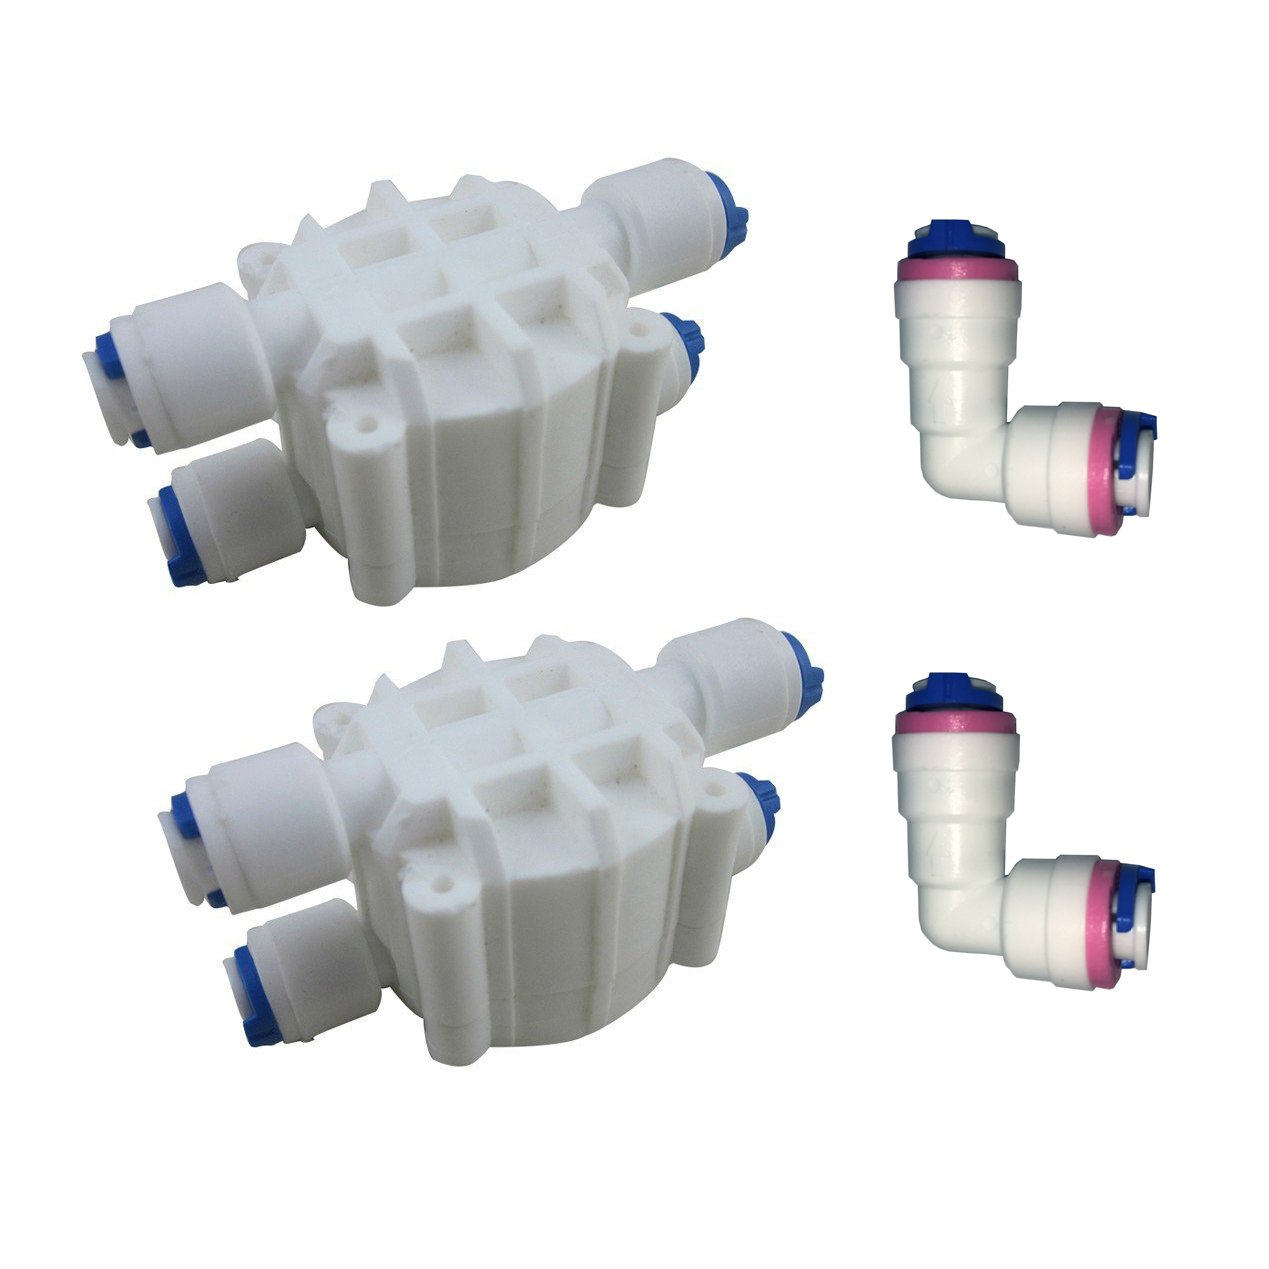 Malida 1/4 Inch tube Automatic Shut Off Valve Push to Quick Connect Fittings For Reverse Osmosis Water Purifiers Filters (4 Way Shut-Off Valve)